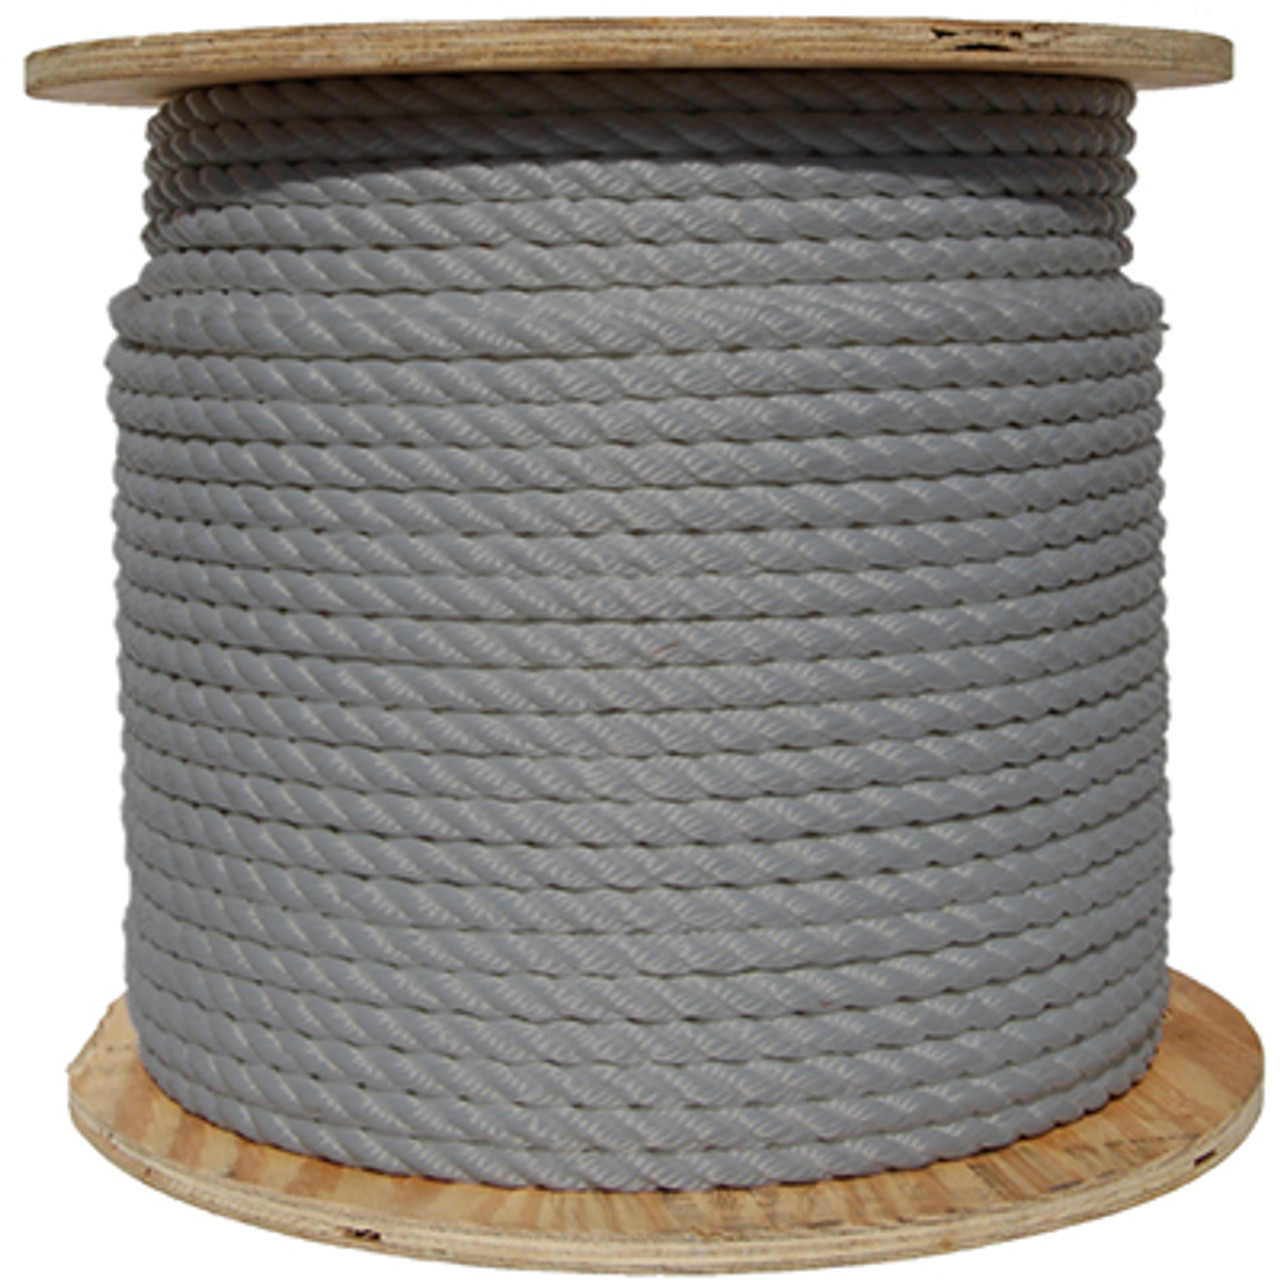 Gray/Silver Wire Center Rope Spool